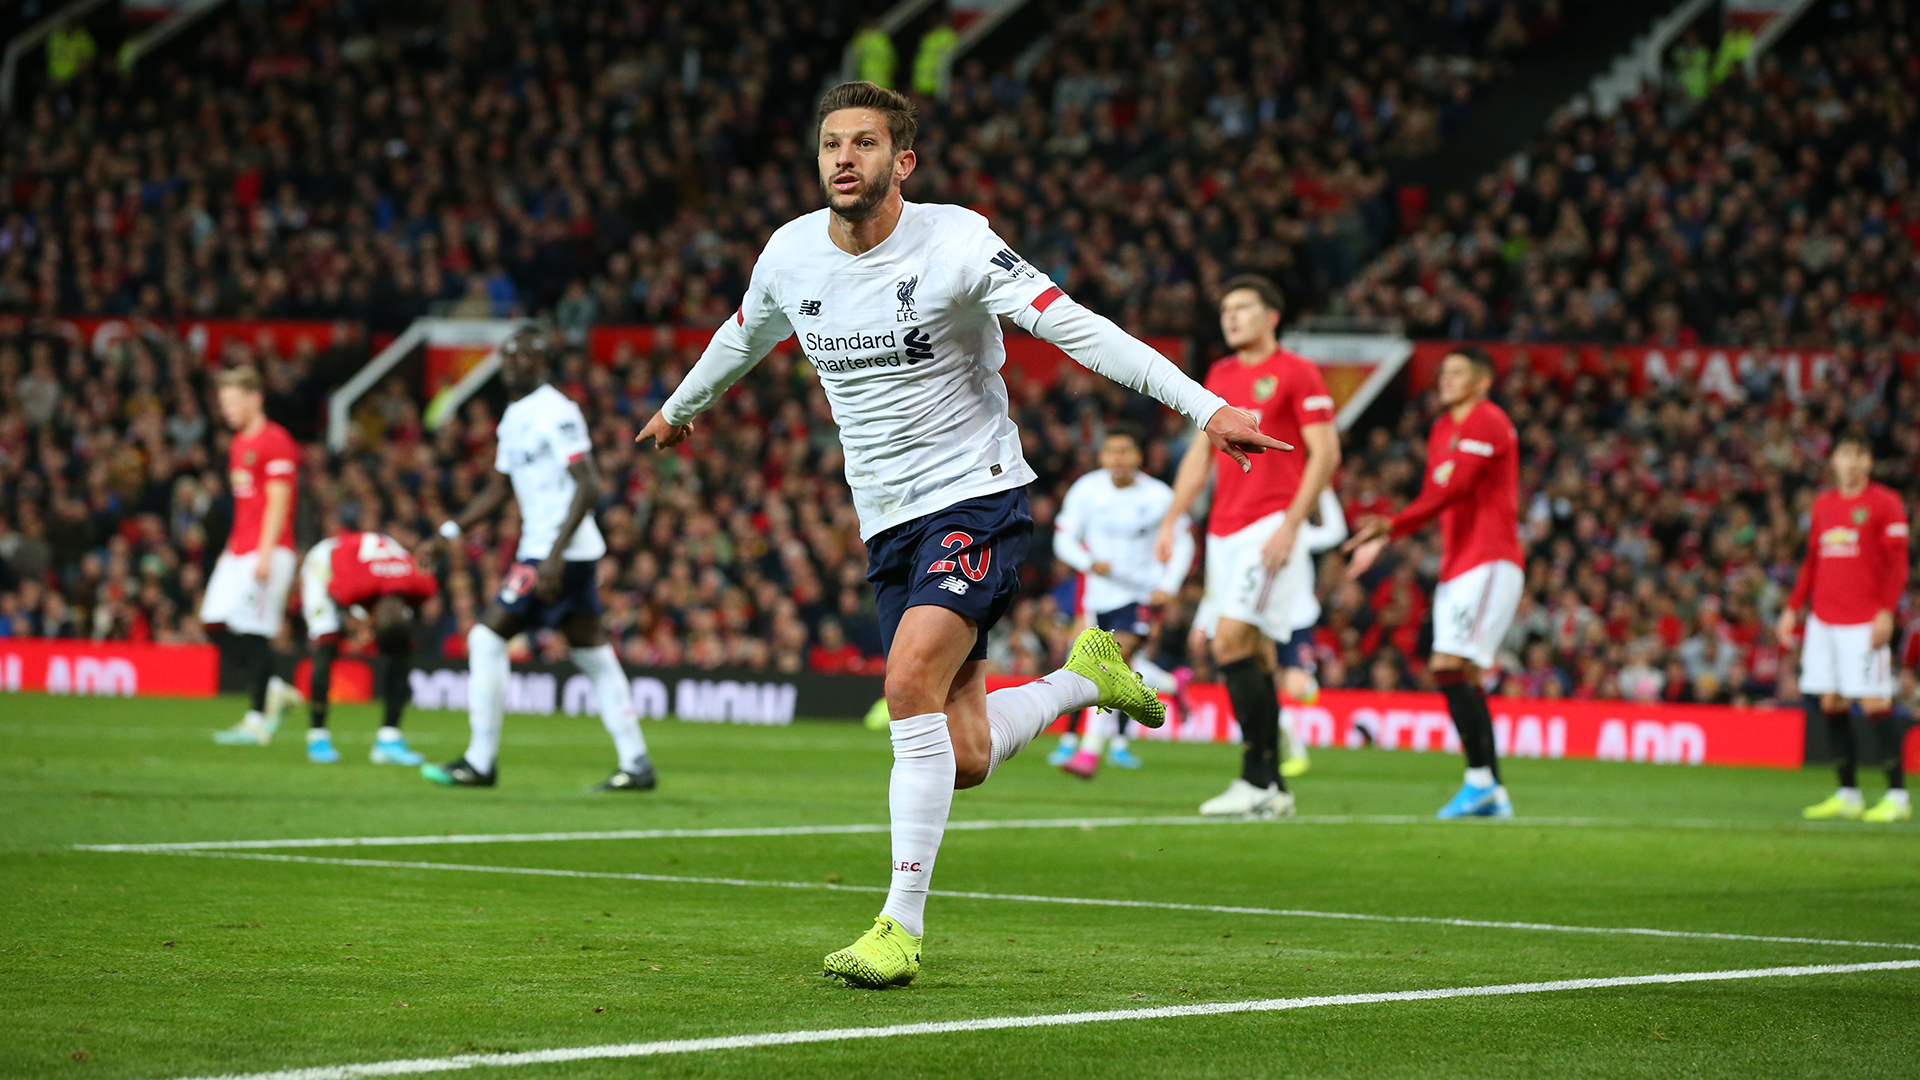 'Liverpool have a score to settle with Man Utd' – Oxlade-Chamberlain 'disappointed' by draw at Old Trafford